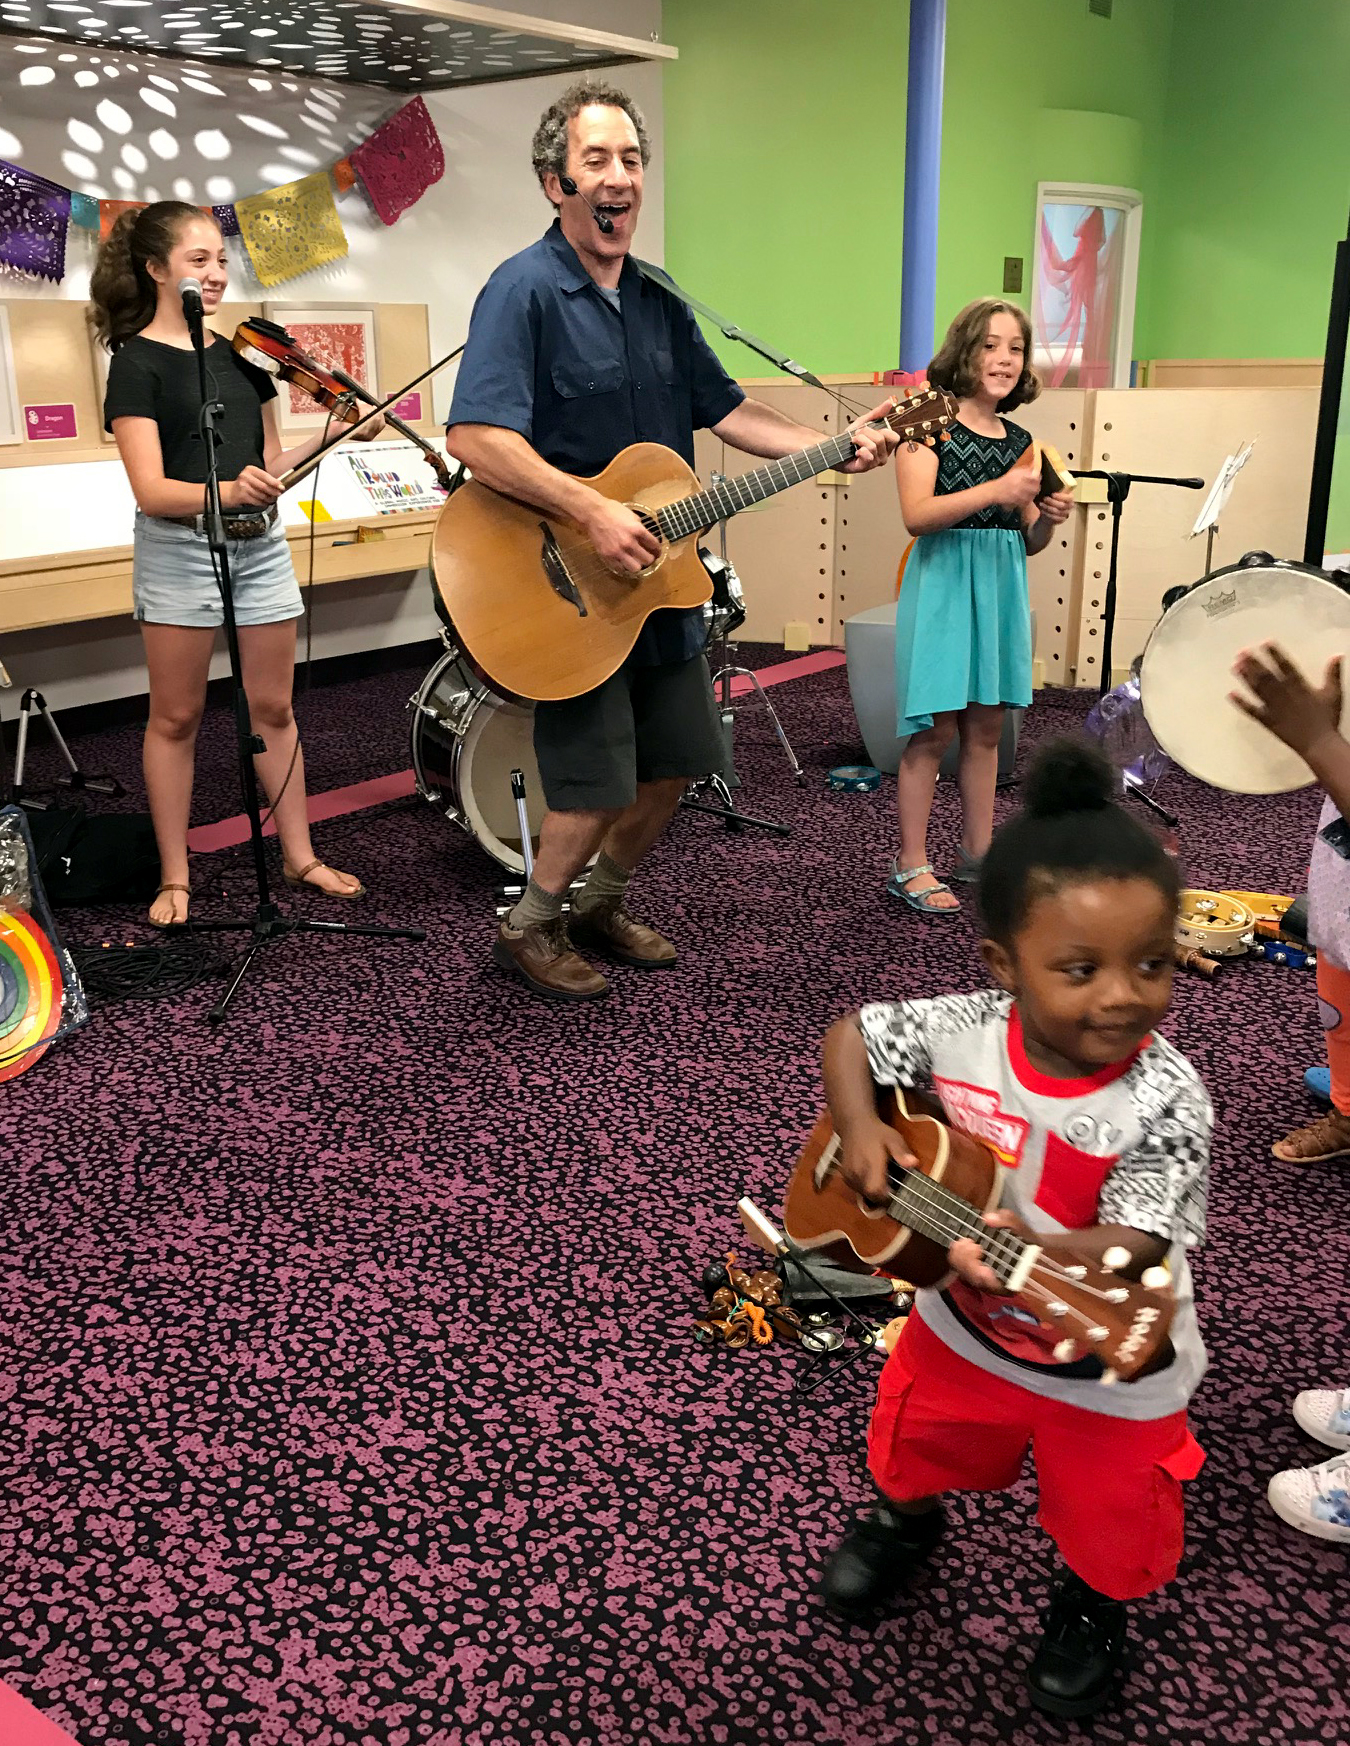 2018-07-18 Sand Family at DuPage Children's Museum Naperville IL